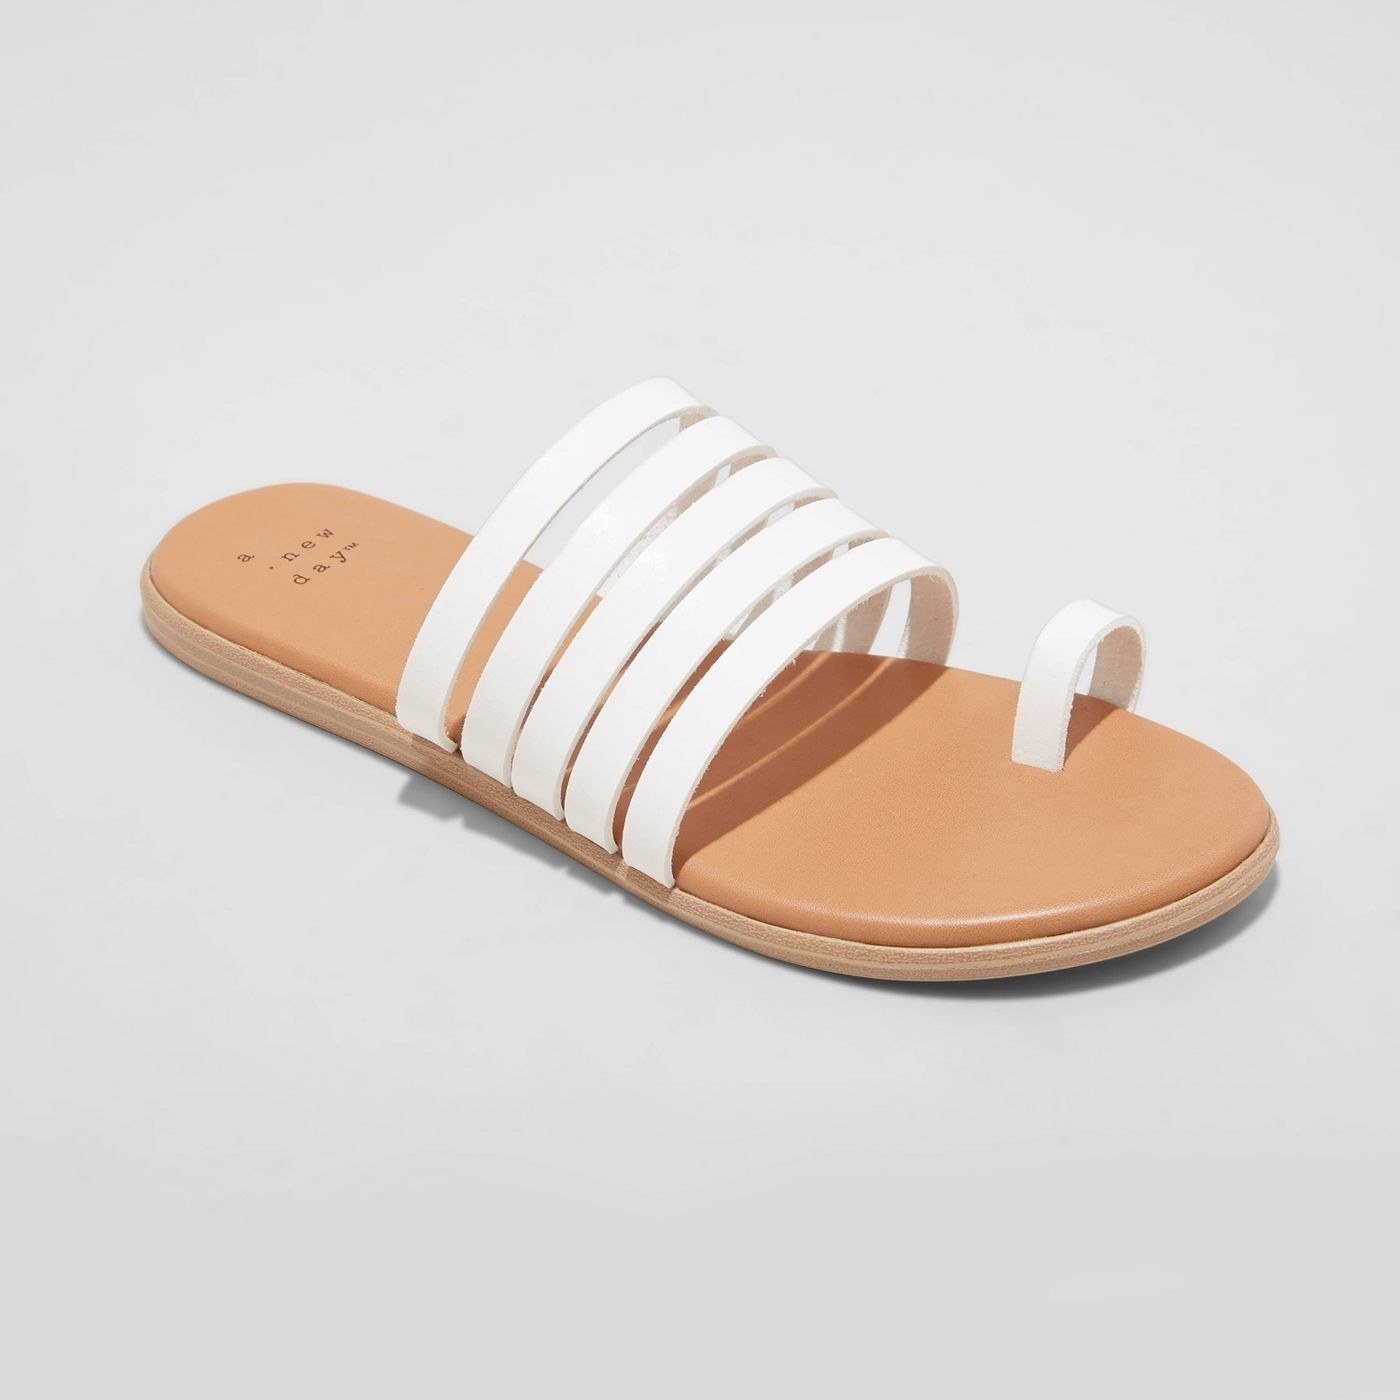 White sandals with five straps and area for one toe, beige sole